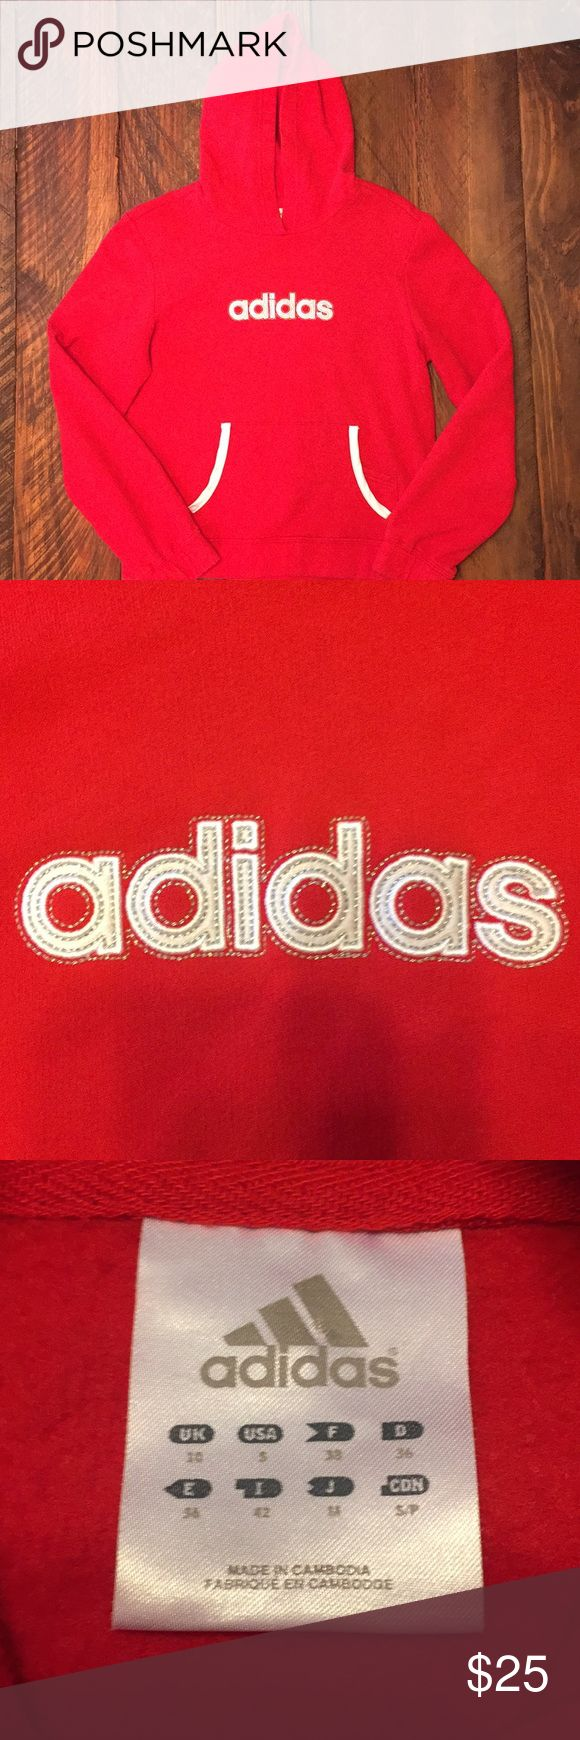 """Red Adidas hoodie in small Red Adidas hoodie in small.  Embroidered """"adidas"""" logo in excellent shape.  Kangaroo pocket includes an extra pocket (shown in picture) and sides are outlined in white satin ribbon. adidas Tops"""